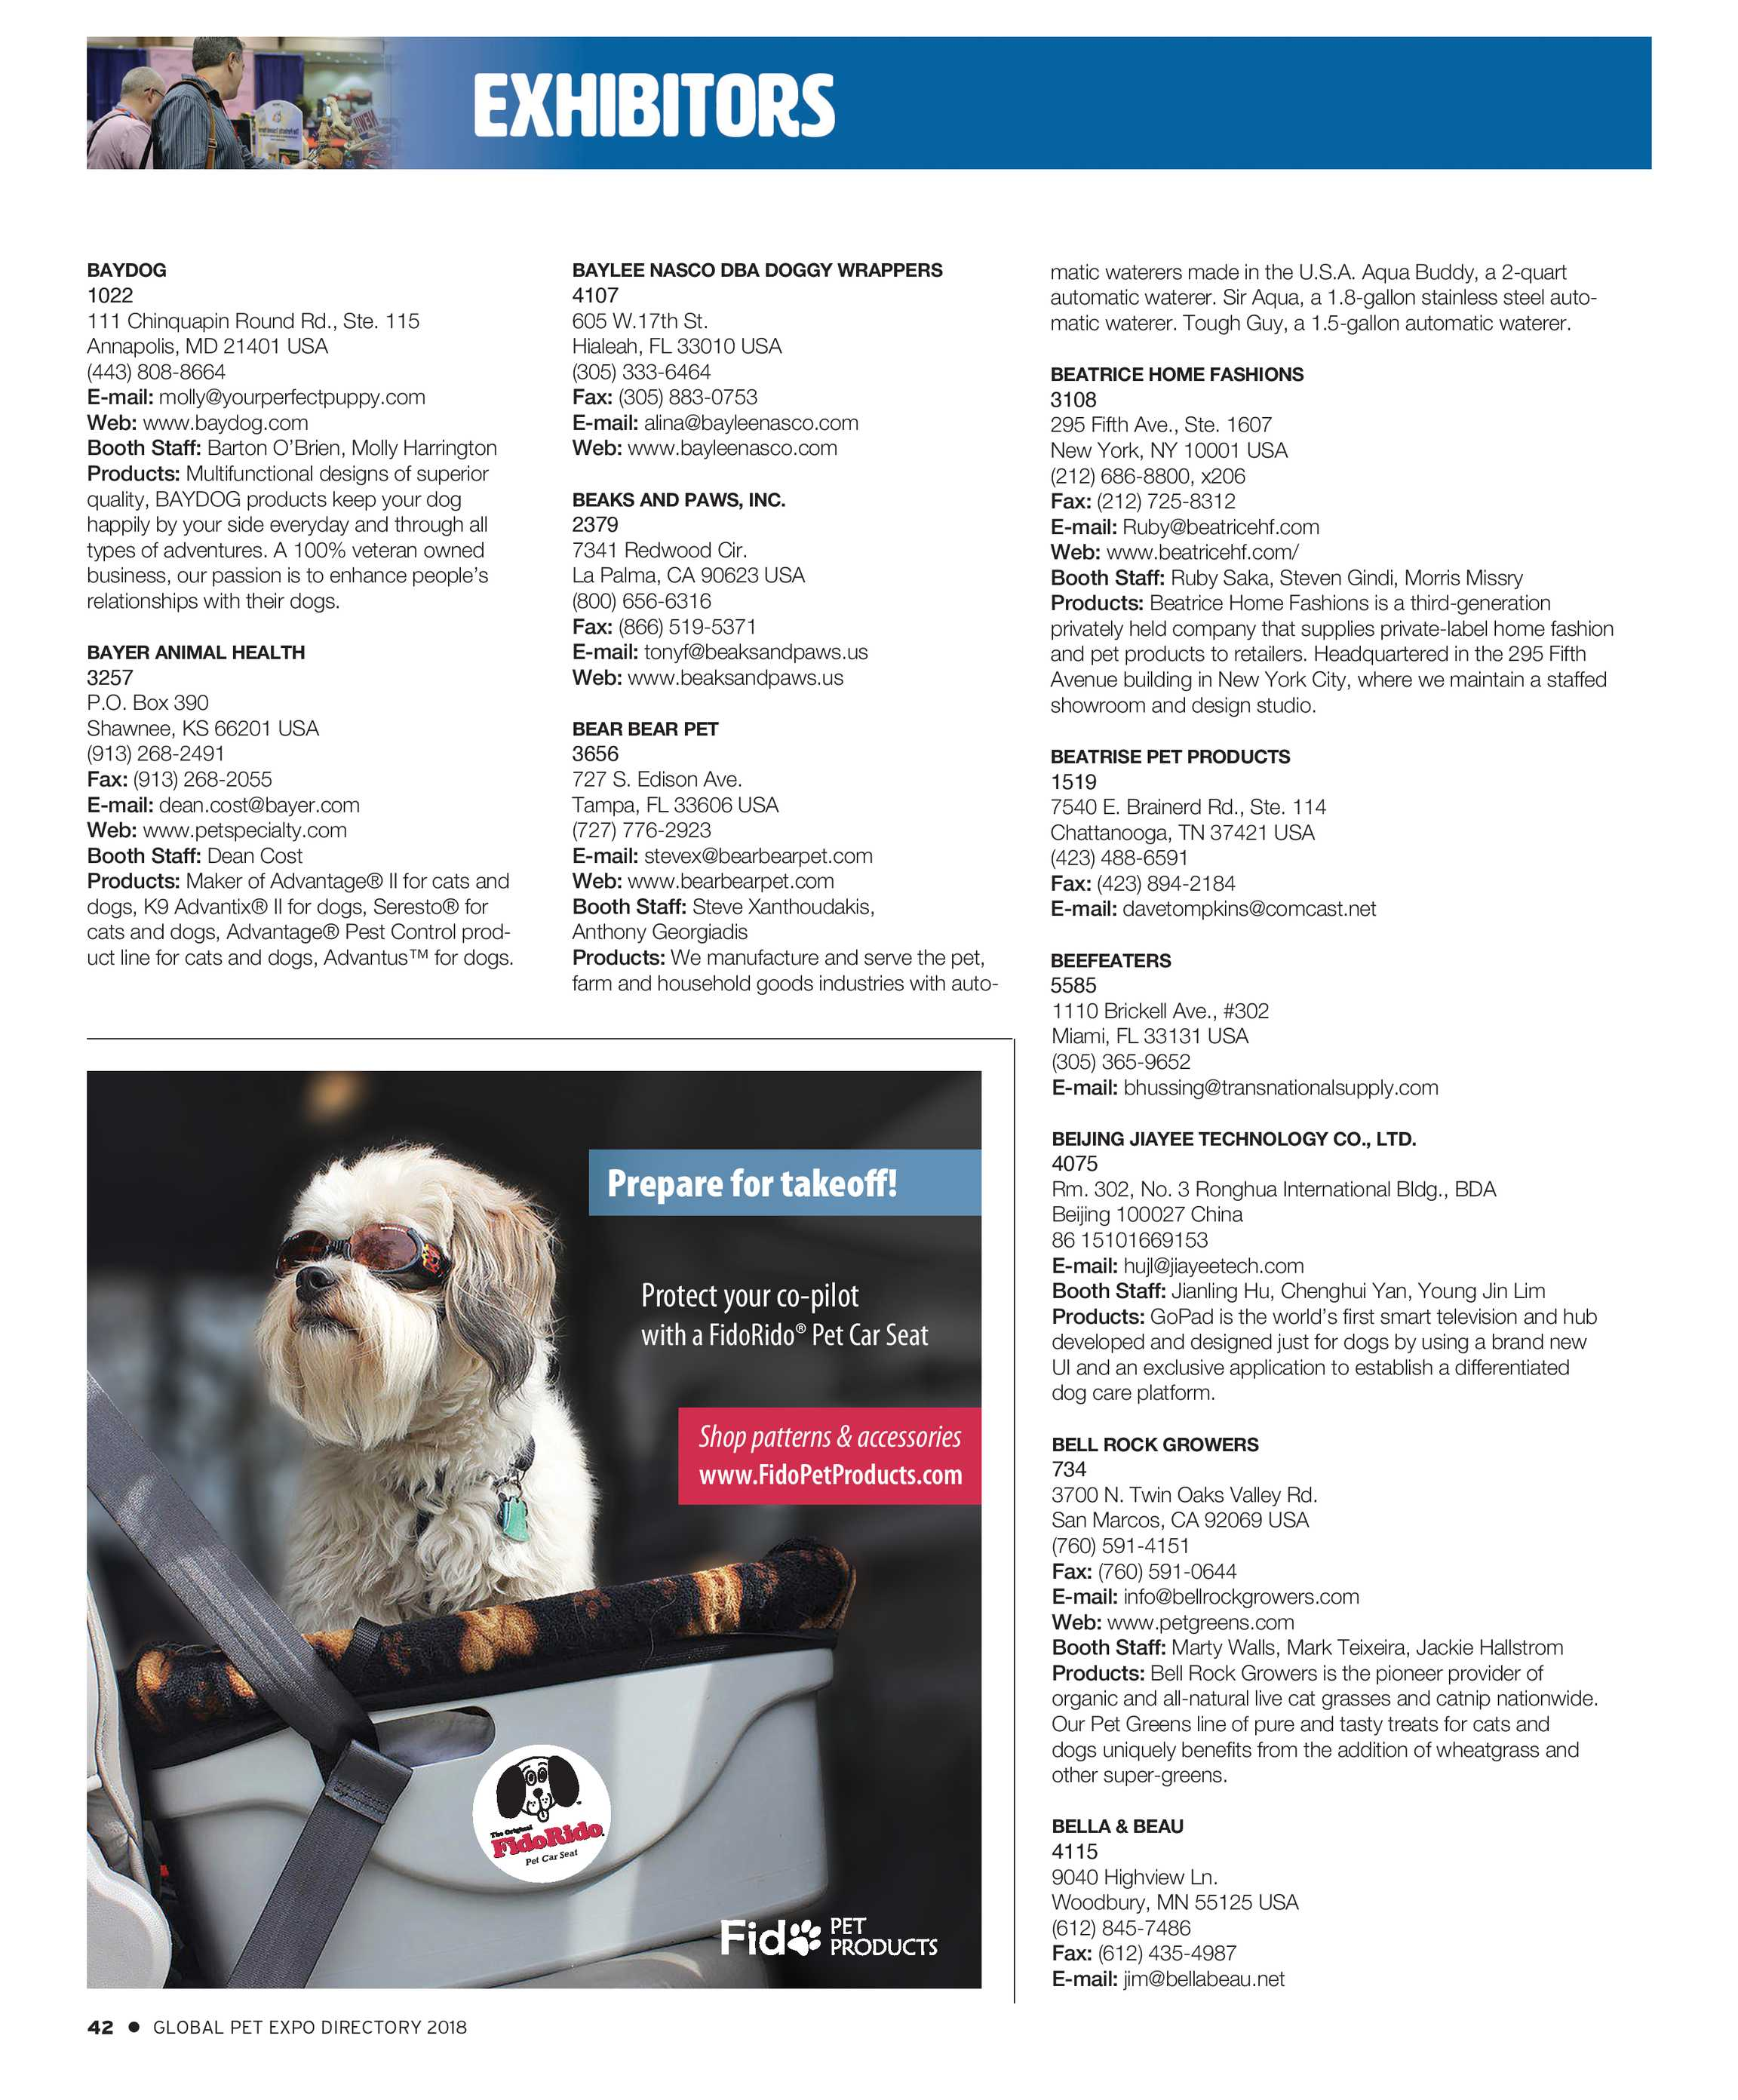 Pet Business - Global Pet Expo Show Directory 2018 - page 42